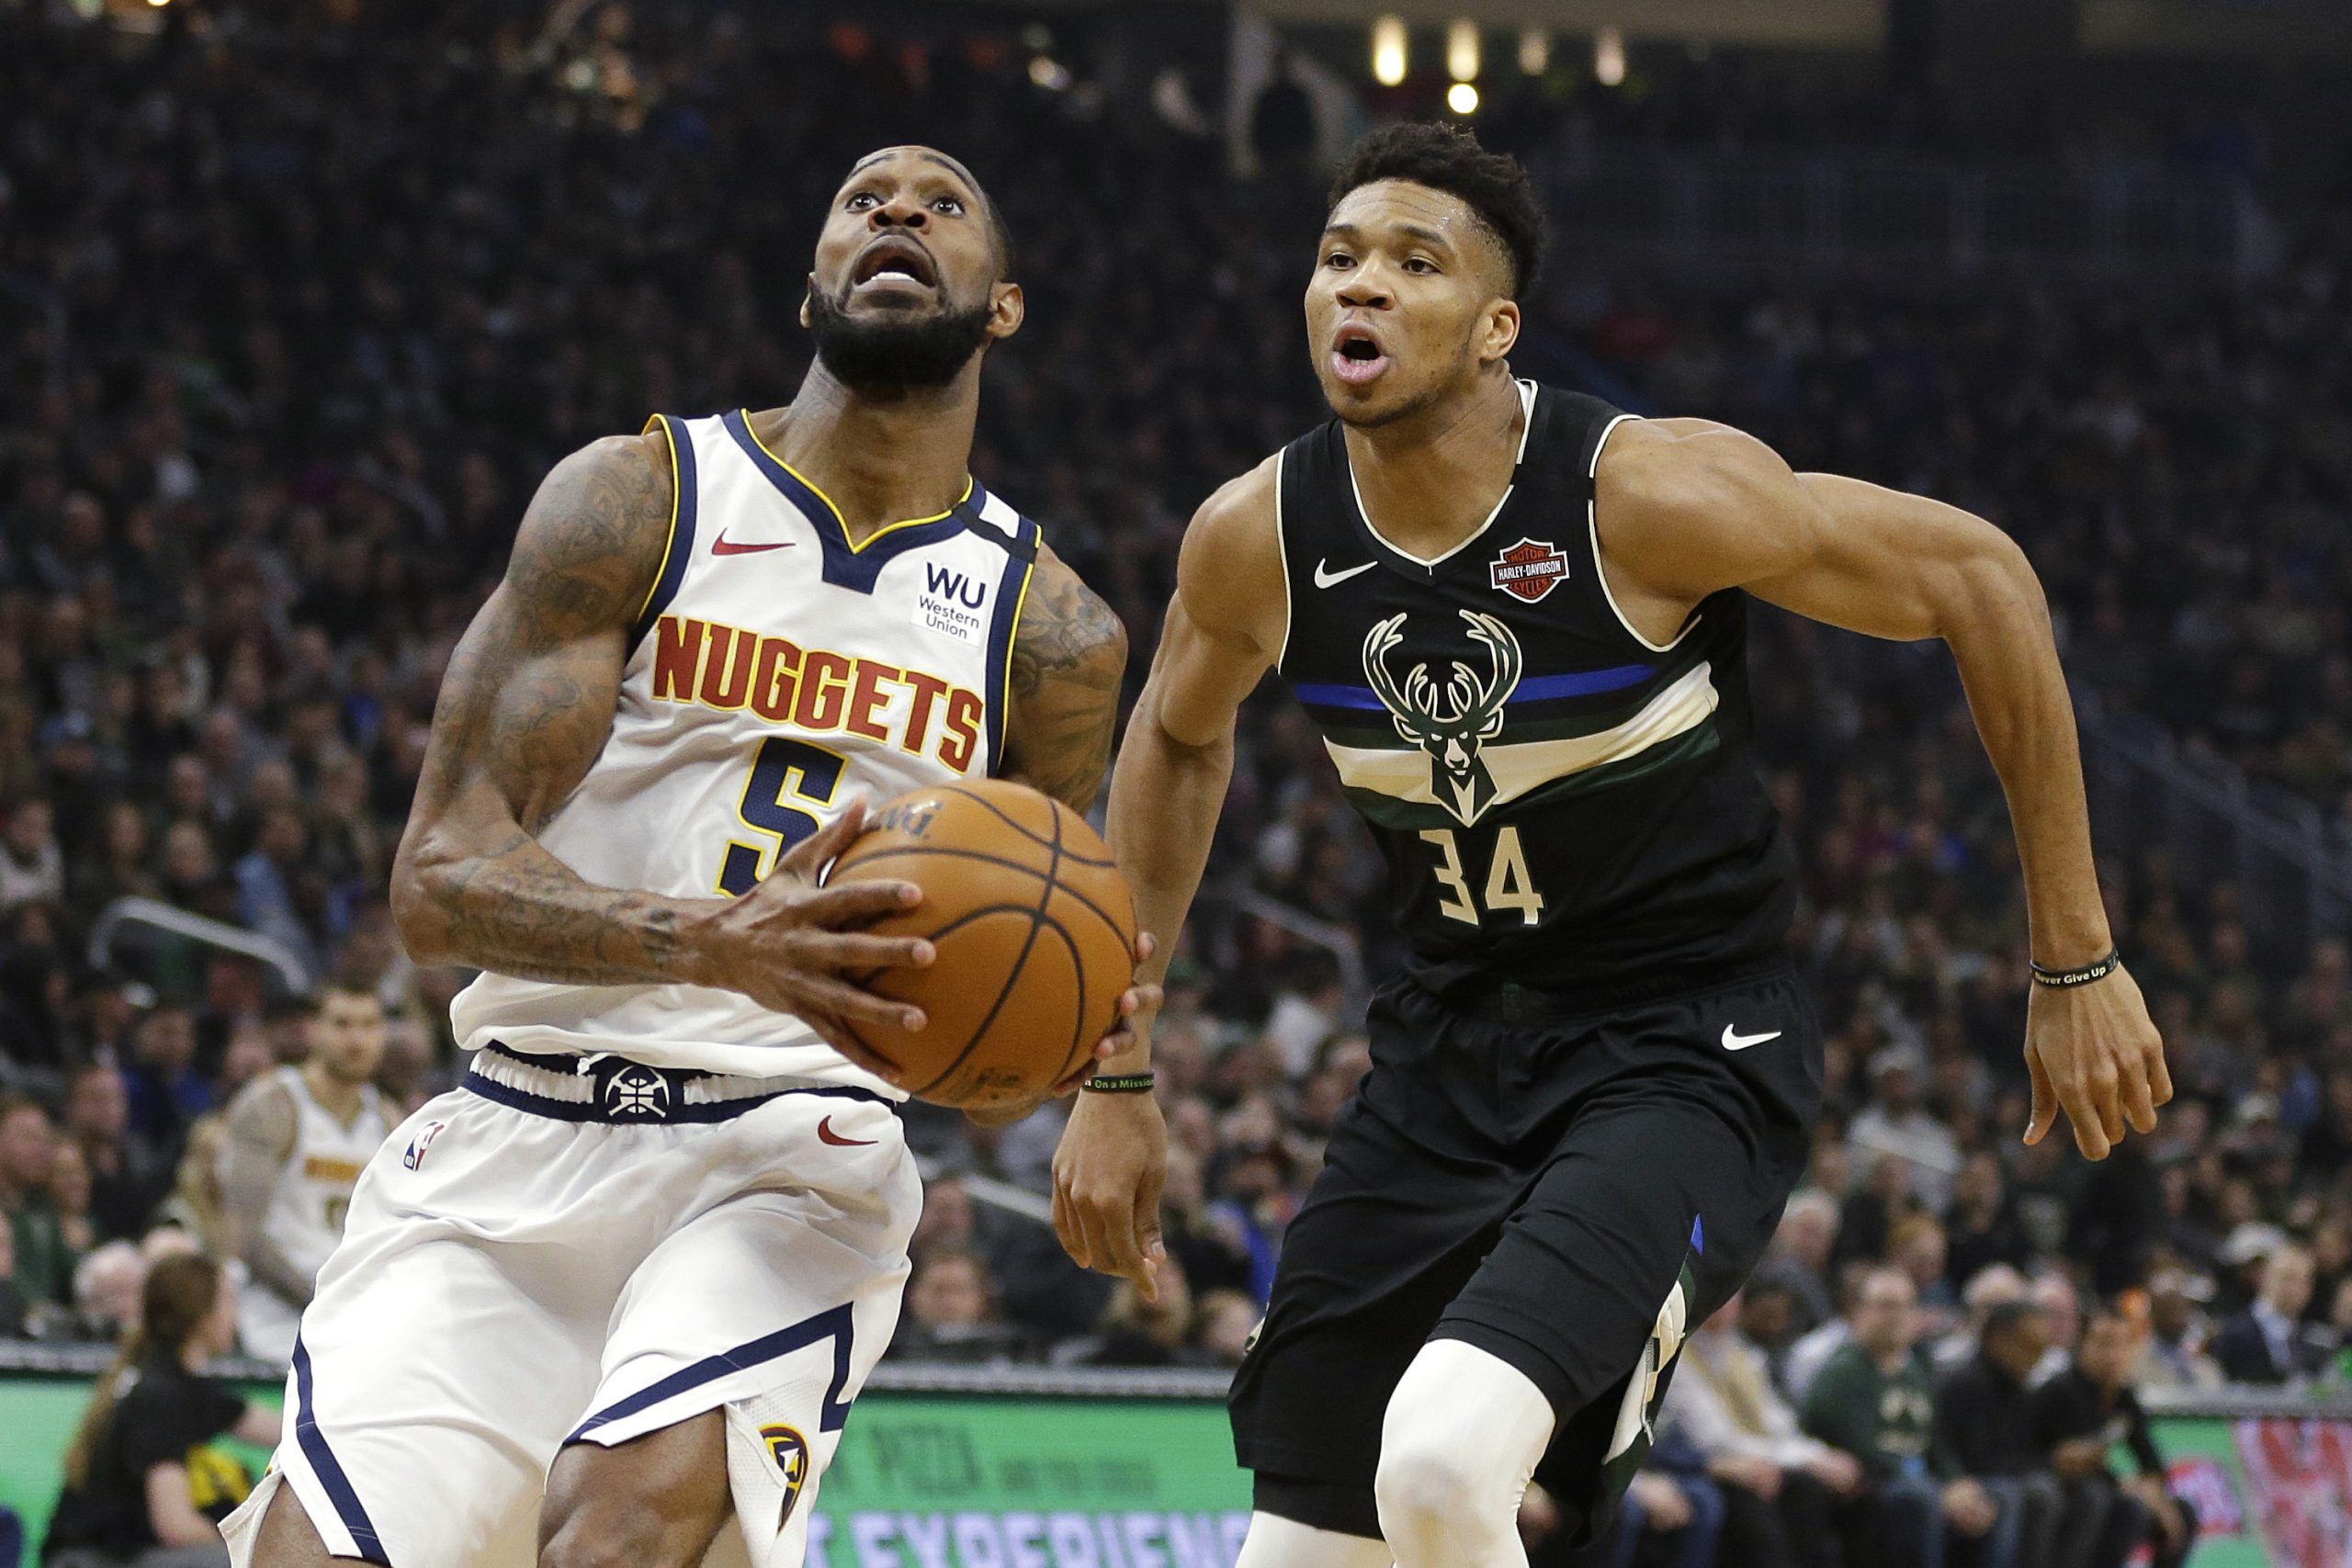 Nuggets And Will Barton To Host Bucks At Pepsi Center